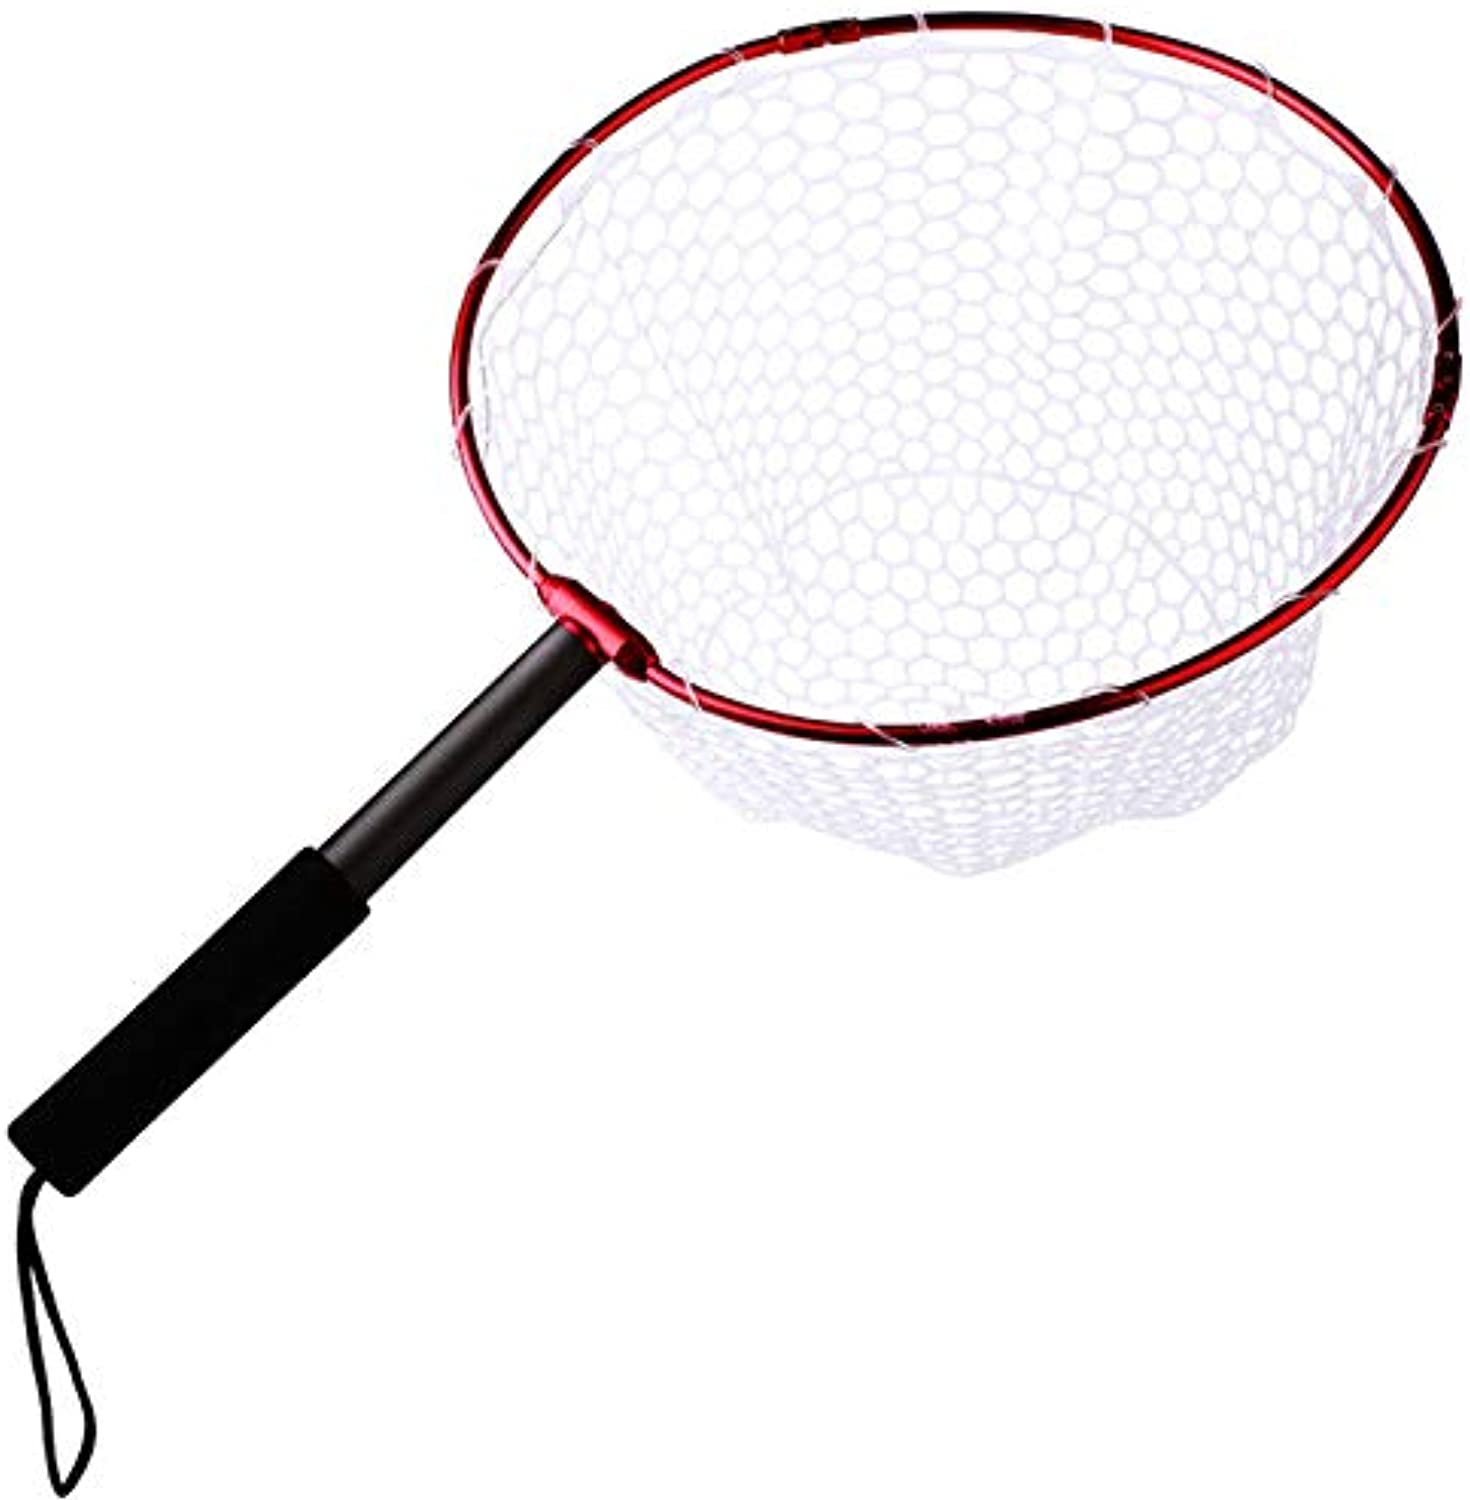 Foldable Fly Fishing Net Brail Red Soft Rubber Landing Net 65.5x40x27cm Handle Fly Cheap Fishing Nets Fishing Accessories   GD012